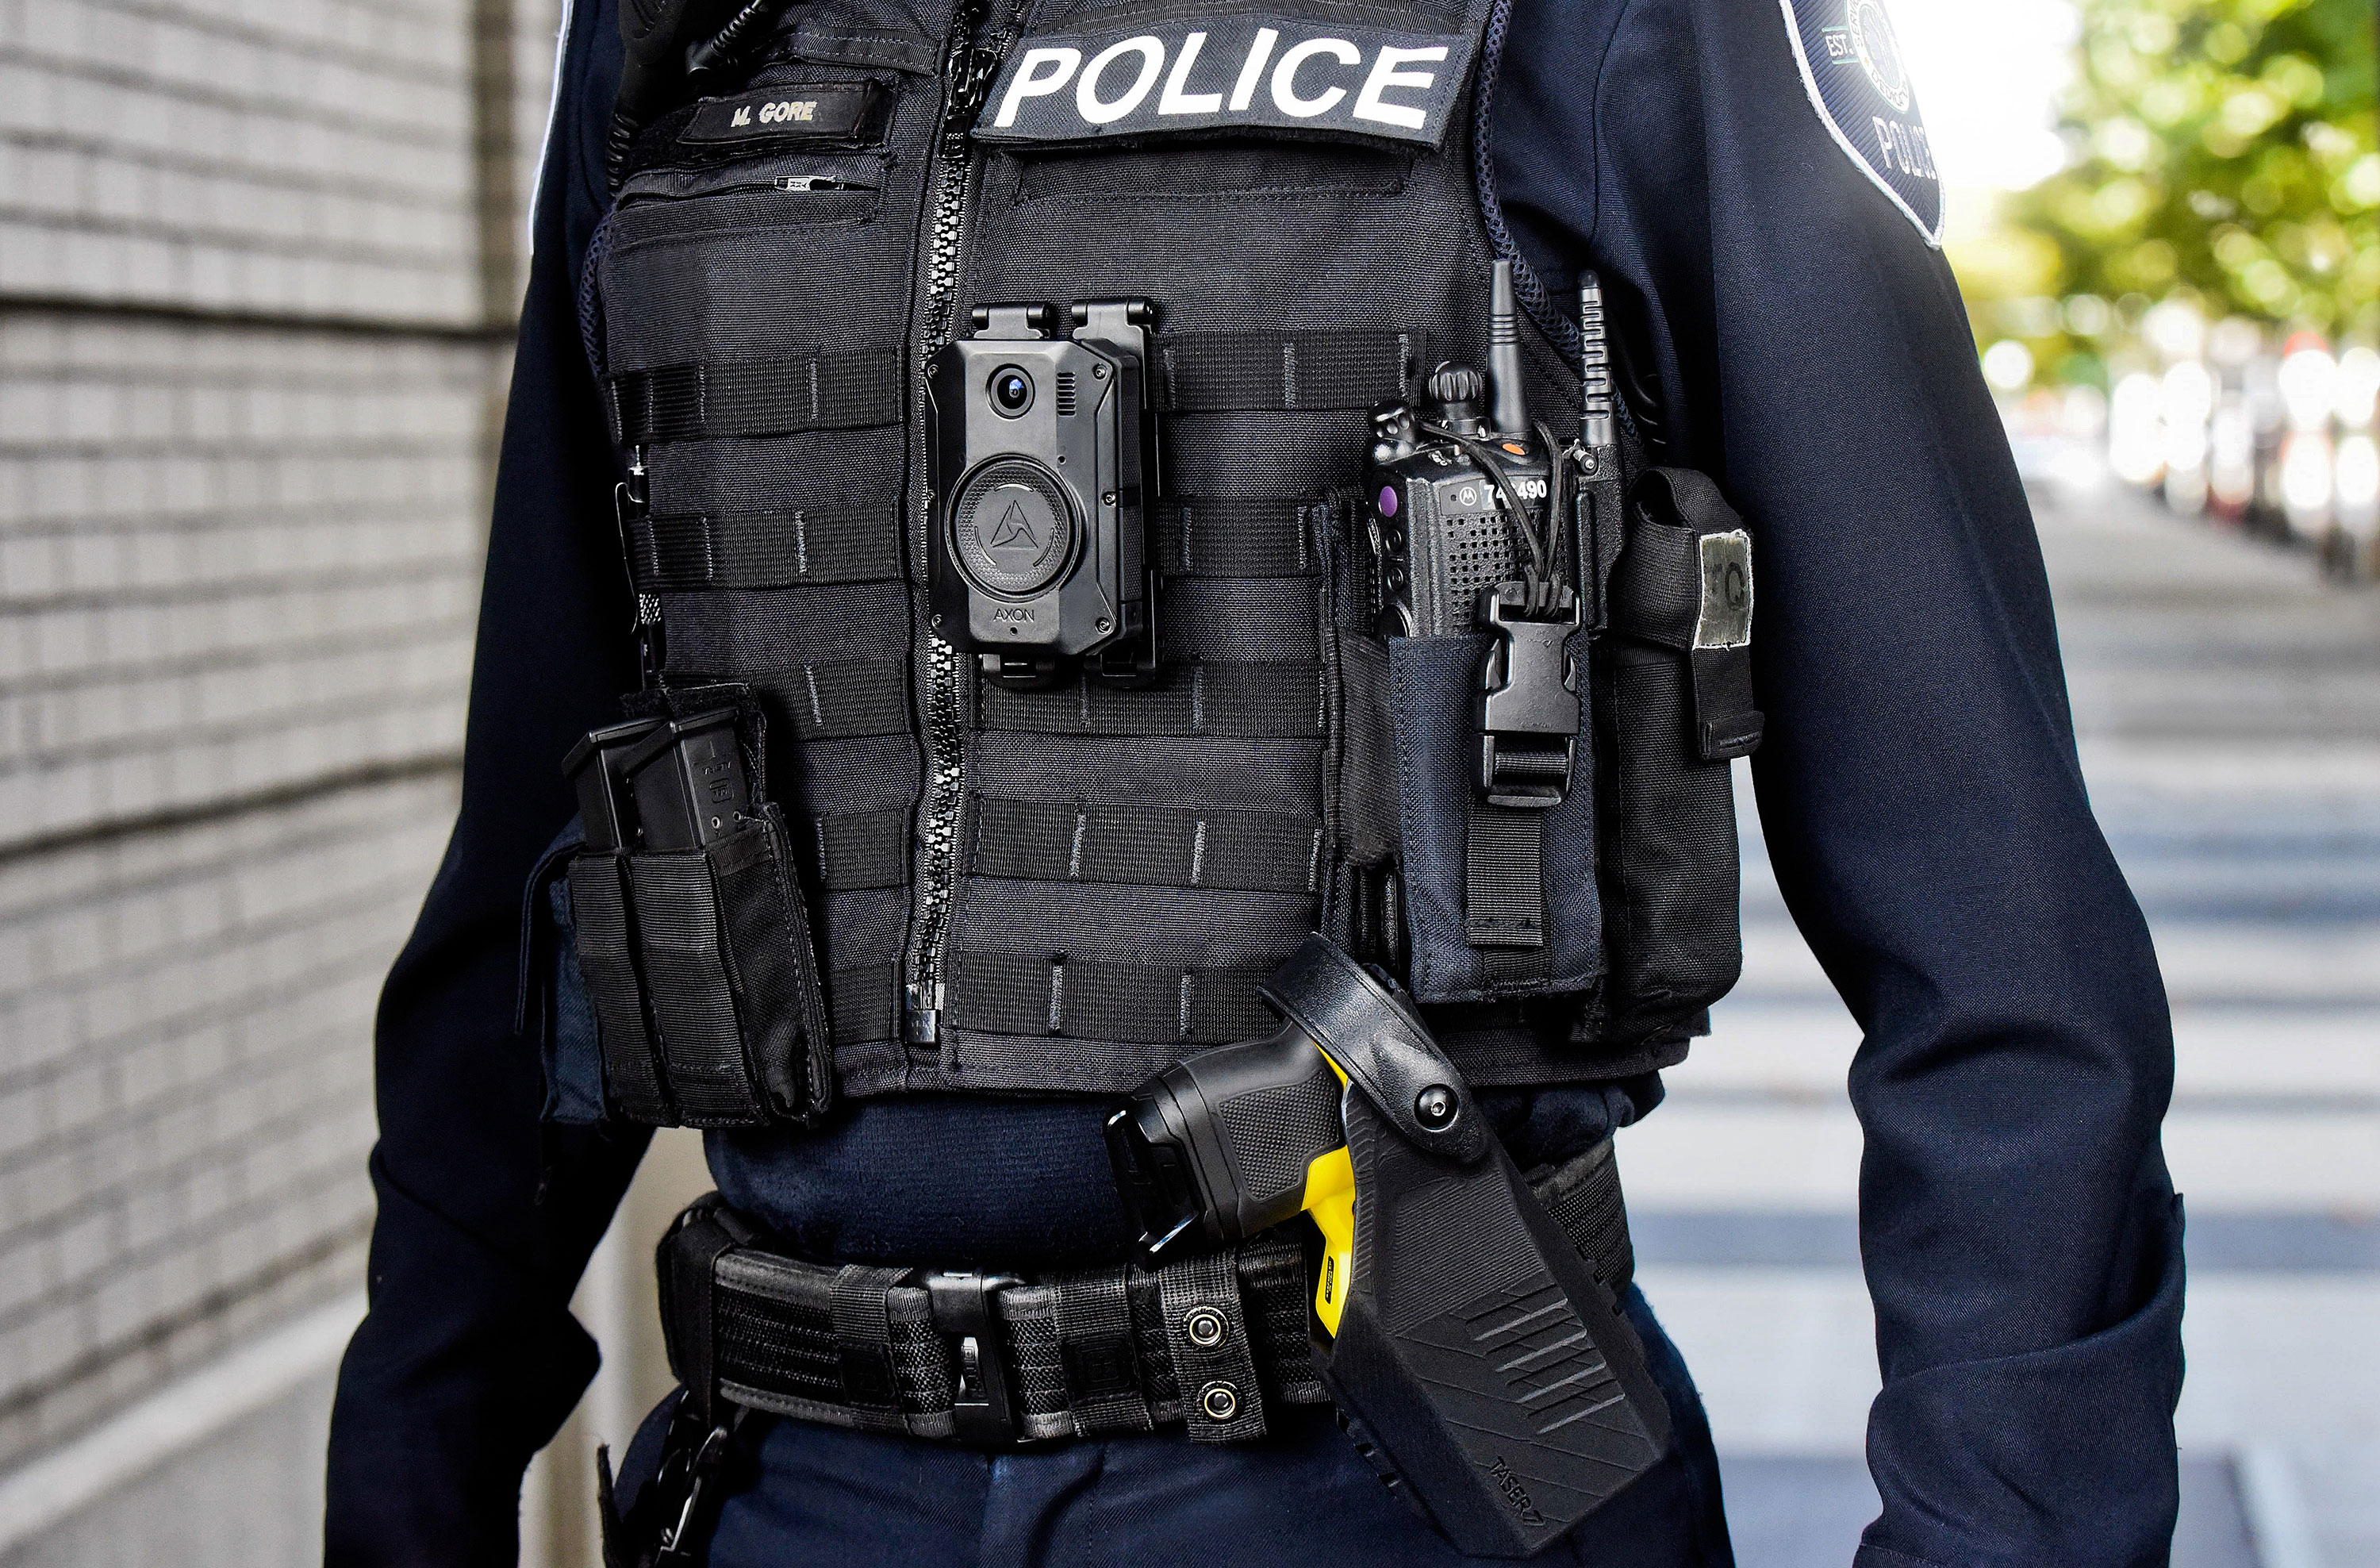 Axon rolls out police body cameras with live-streaming capability - GeekWire